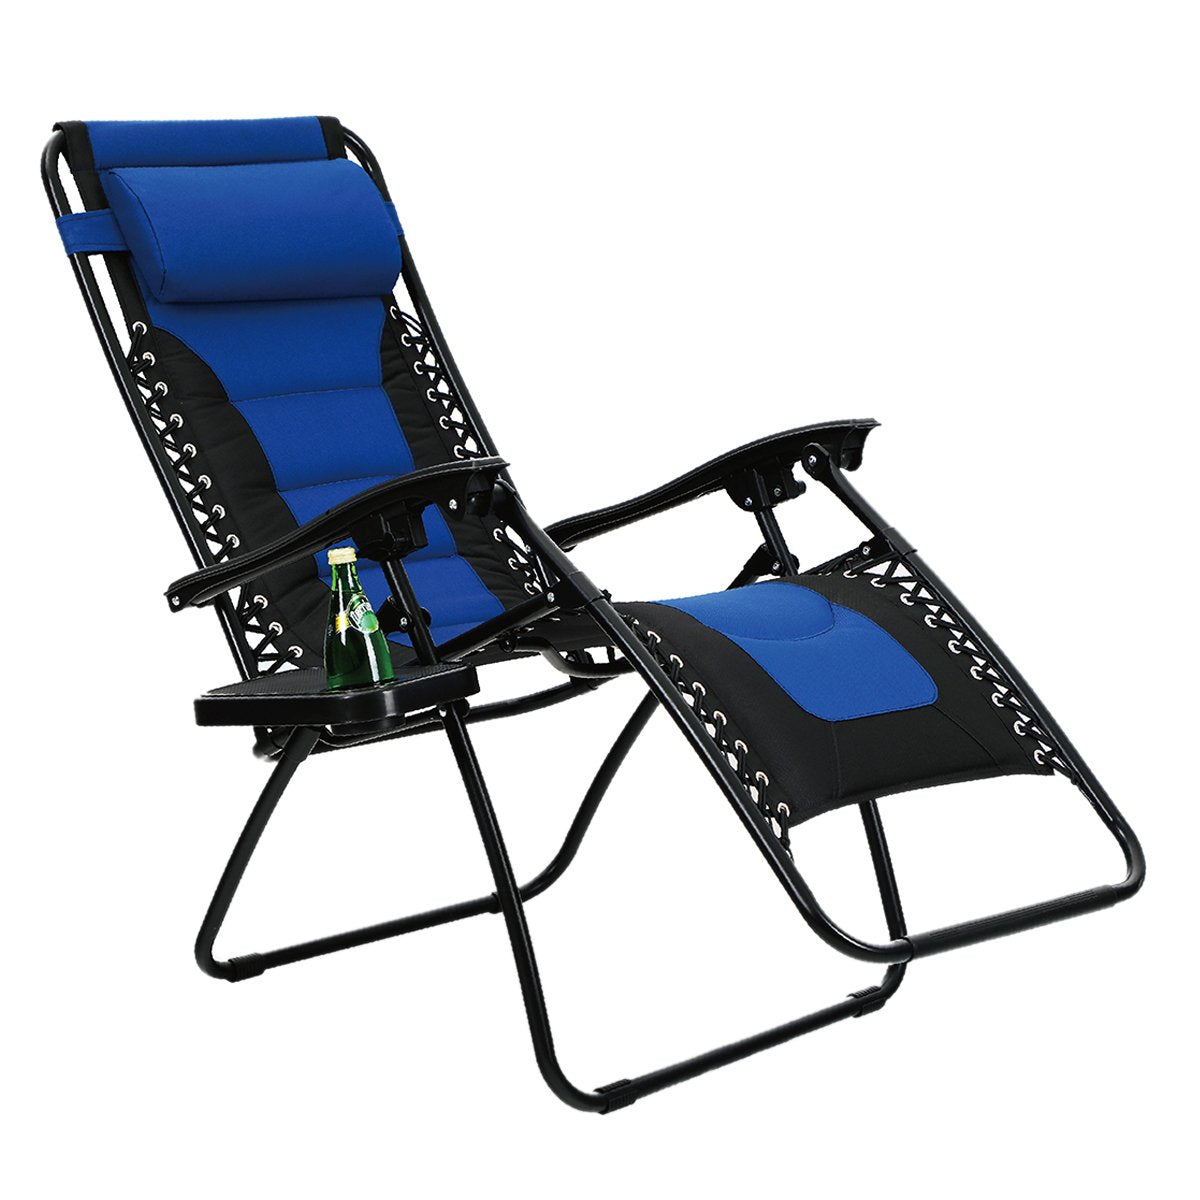 Alphamarts coupon: PHI VILLA Padded Zero Gravity Chair - Patio Lounge Chairs Blue